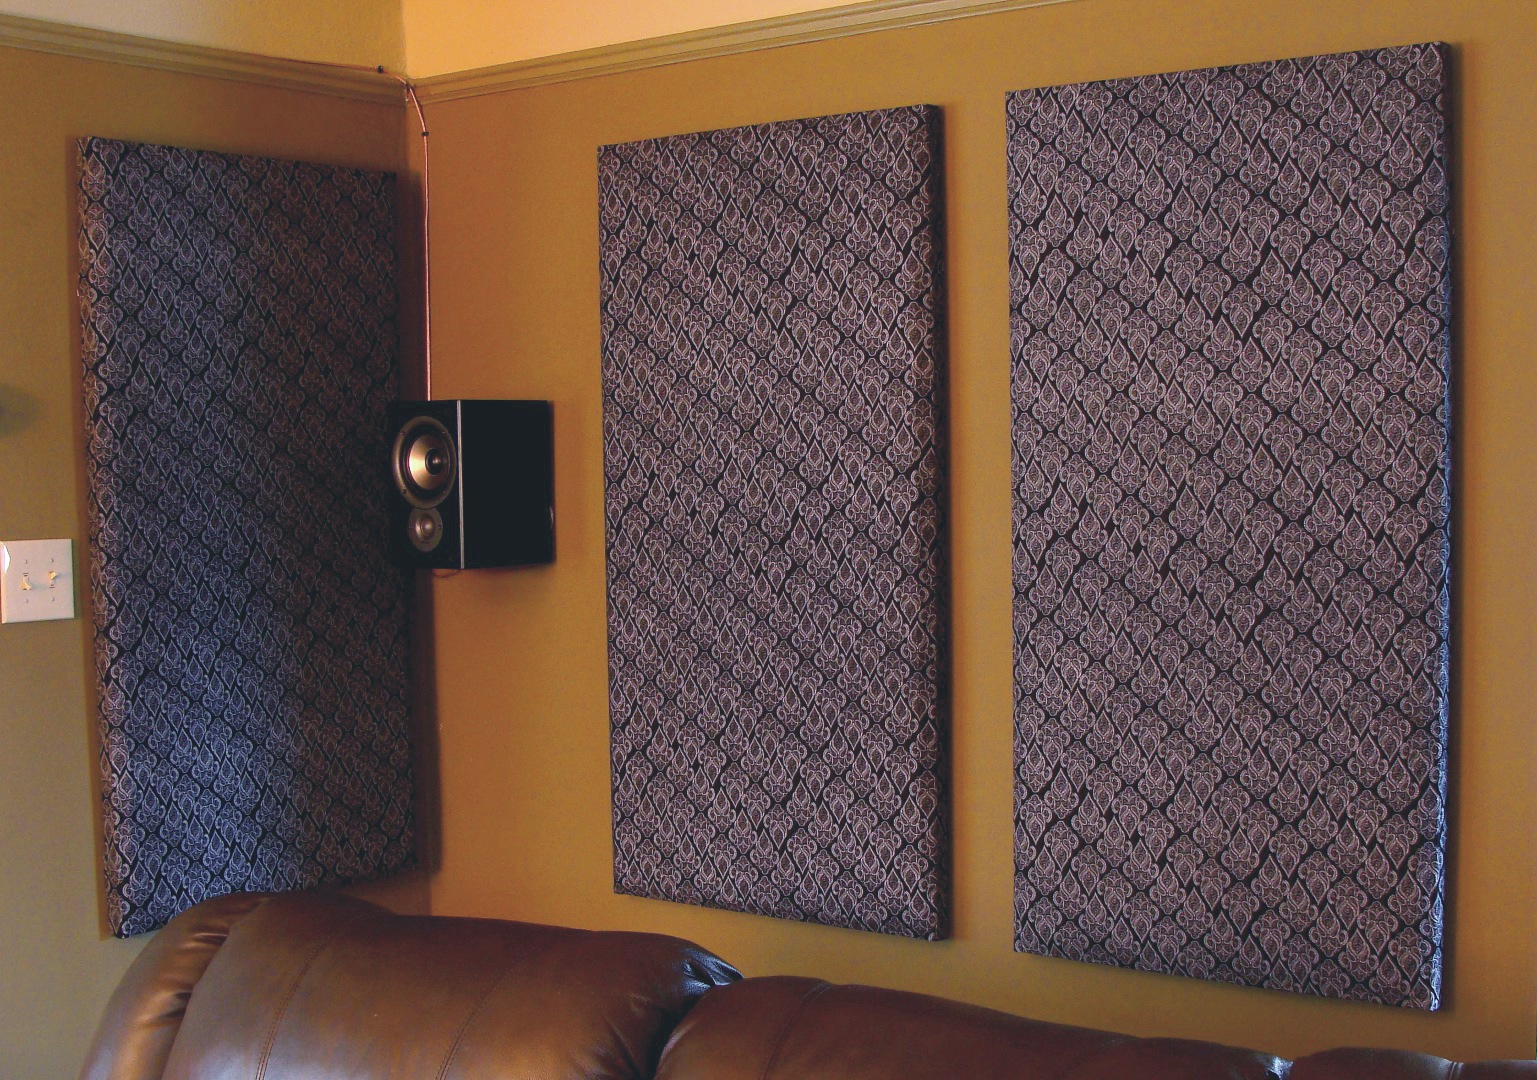 soundproof wall panels : Roselawnlutheran